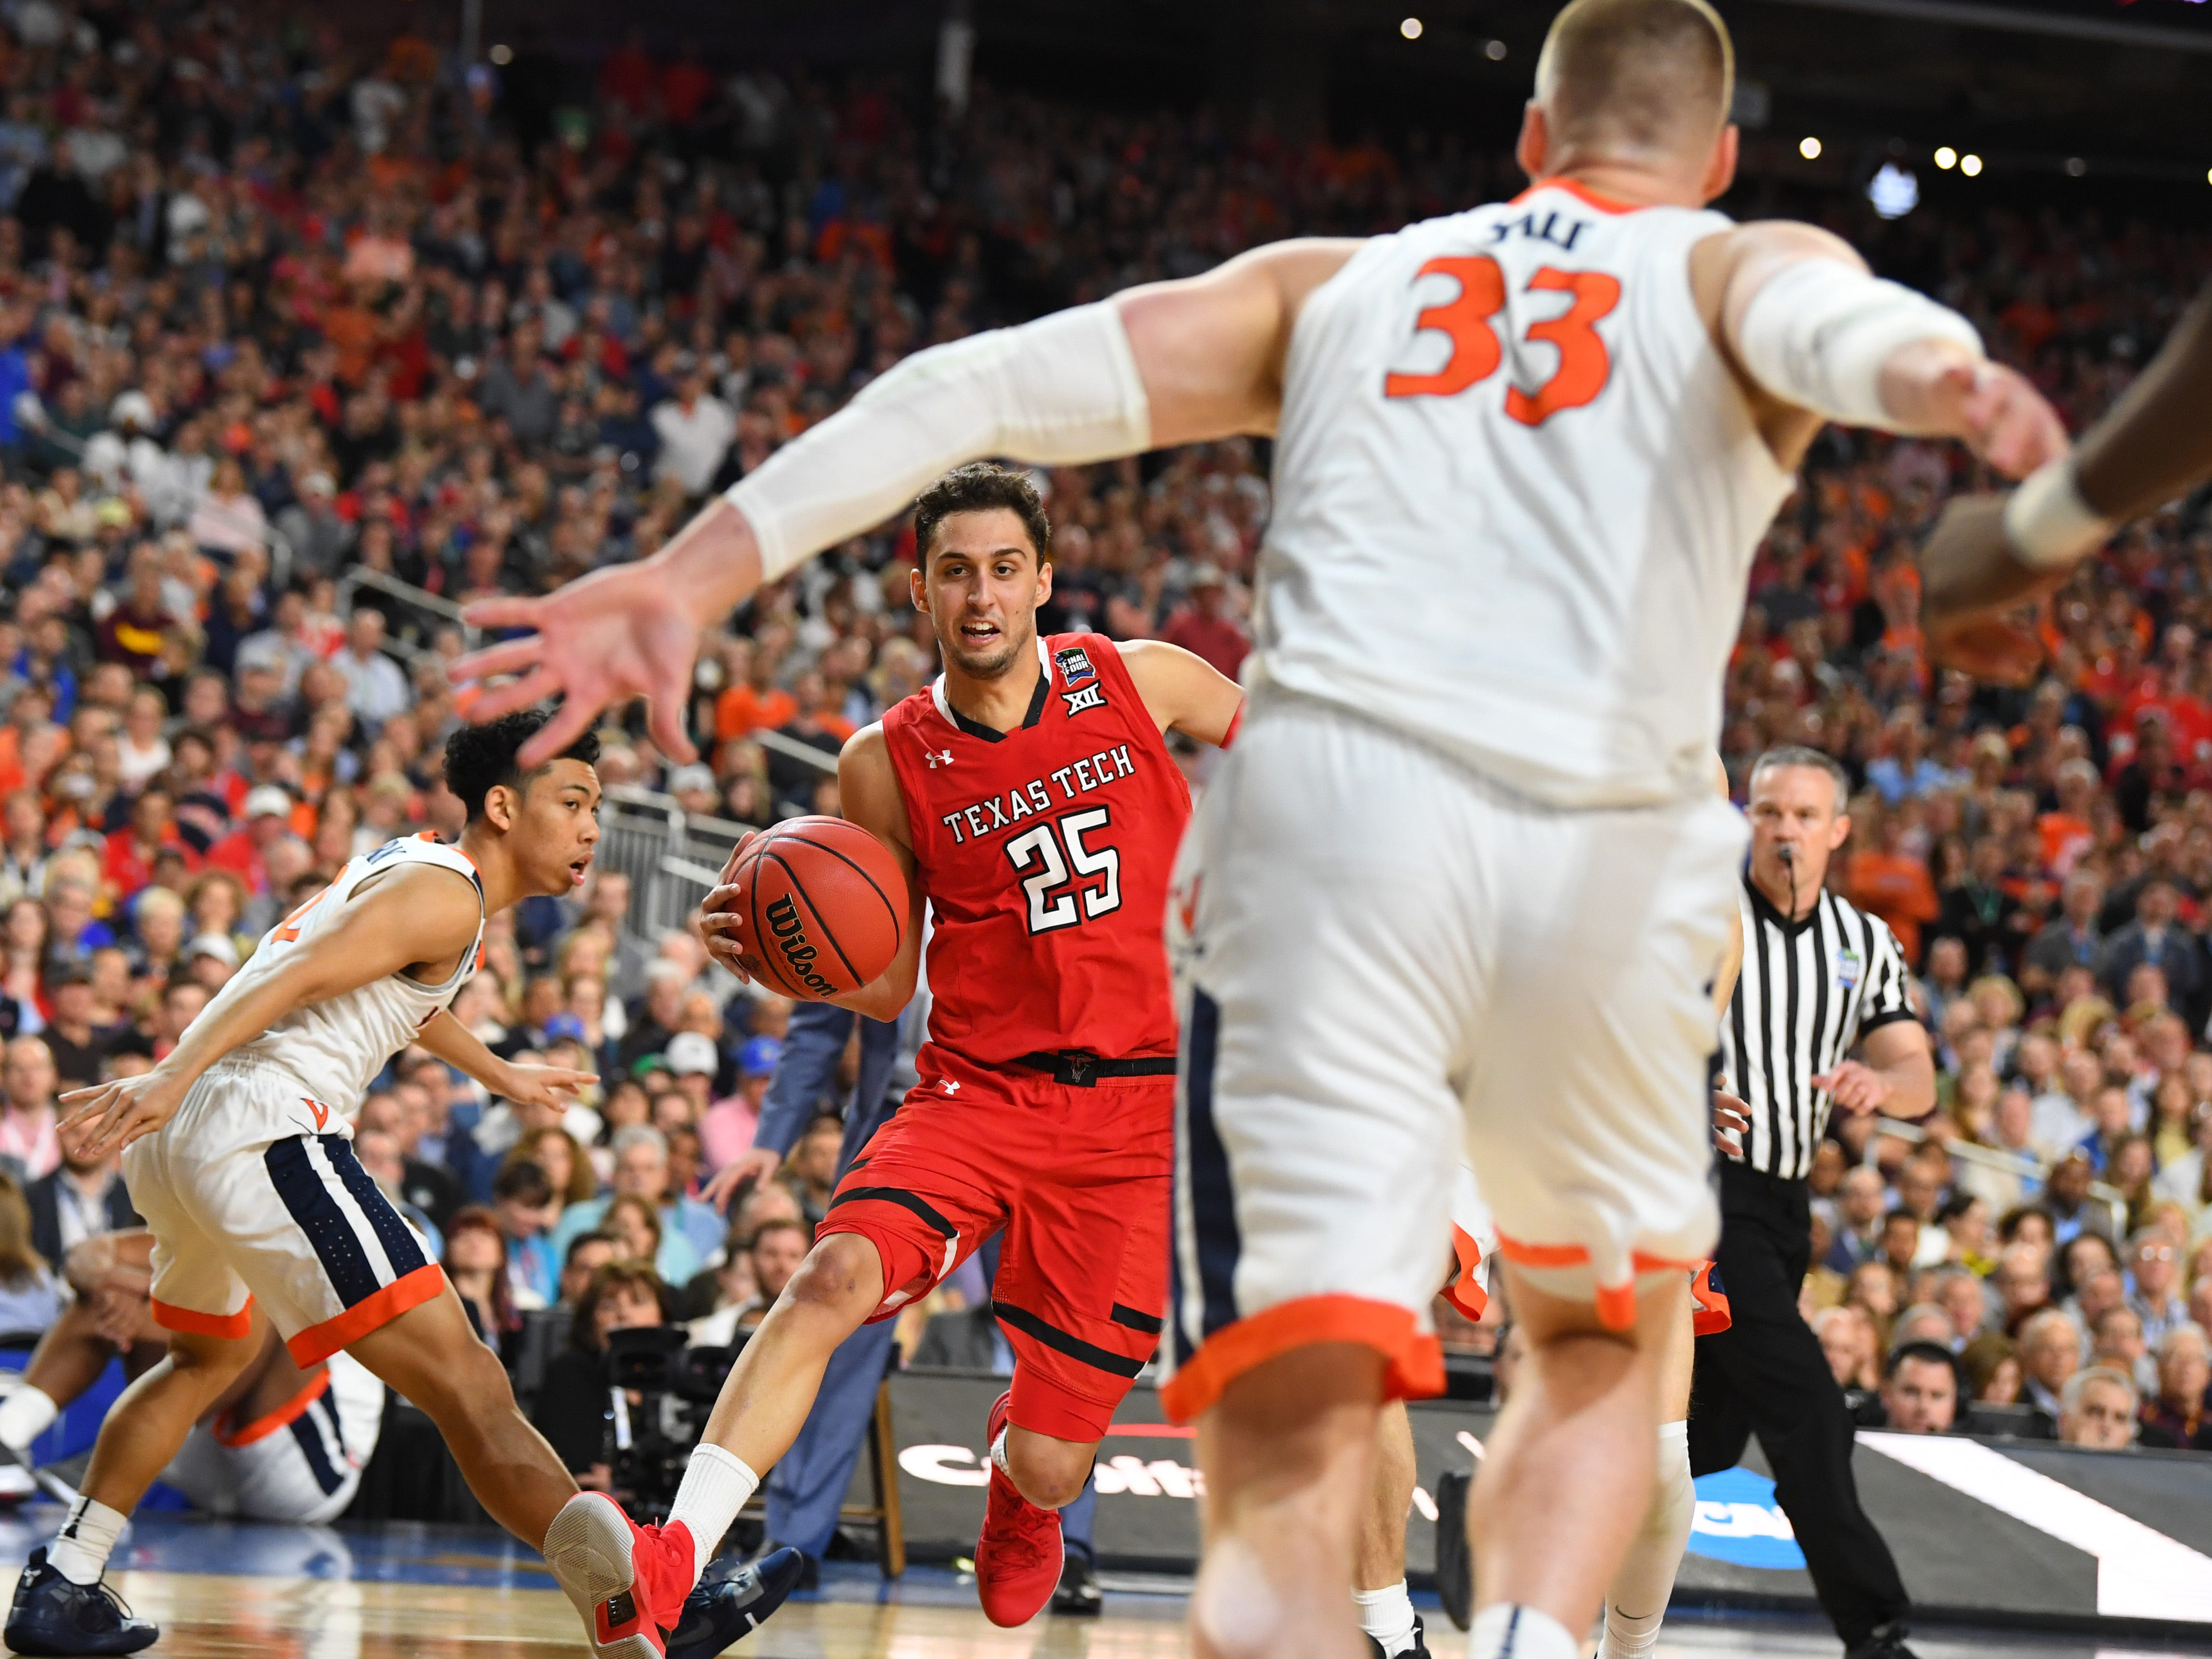 Texas Tech's Davide Moretti (25) drives to the basket while defended by Virginia center Jack Salt.